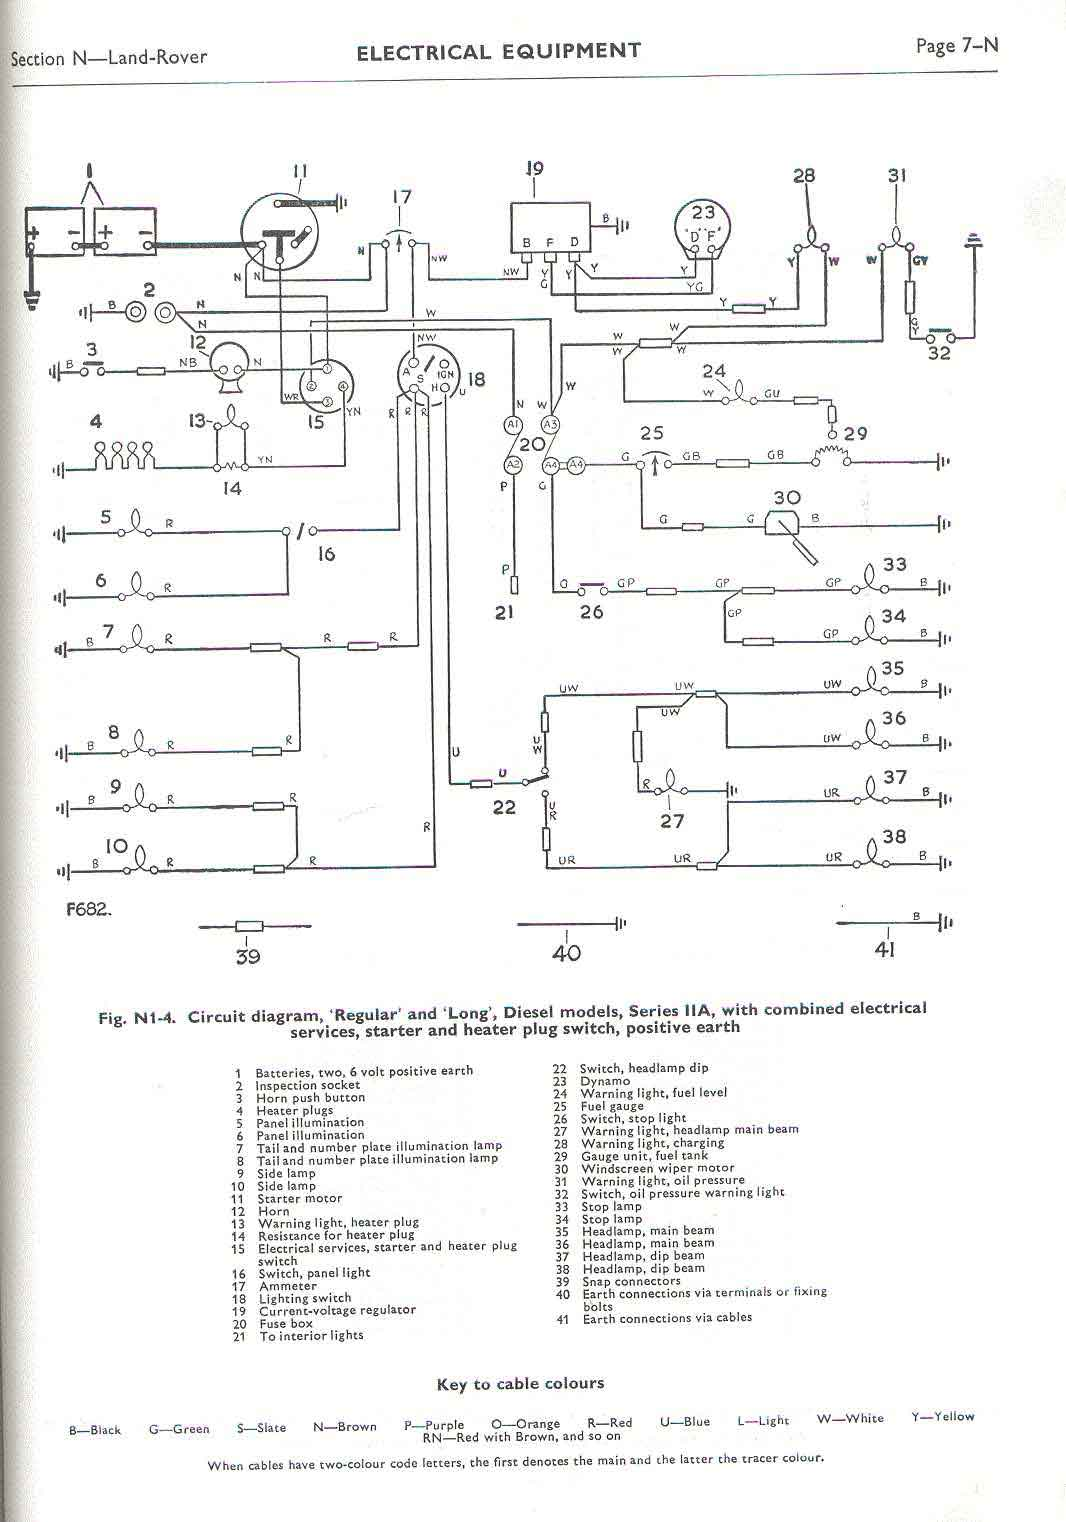 SIIA+VED2 land rover faq repair & maintenance series electrical land rover series 2a wiring diagram at bayanpartner.co